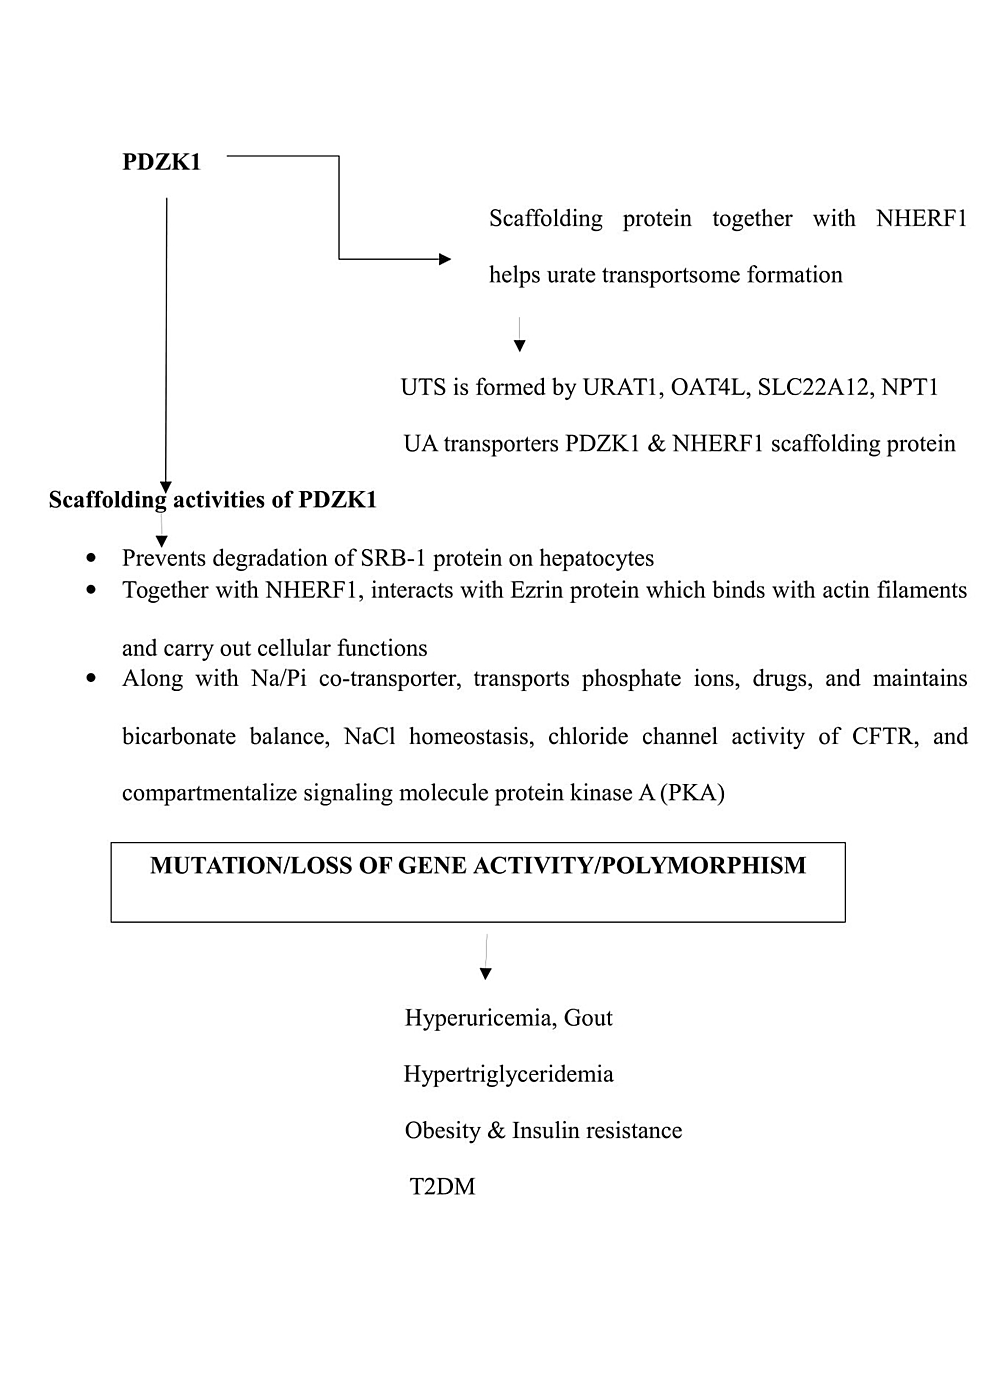 Flow-chart-showing-function-of-the-gene-PDZK1-and-the-consequences-of-its-mutation.